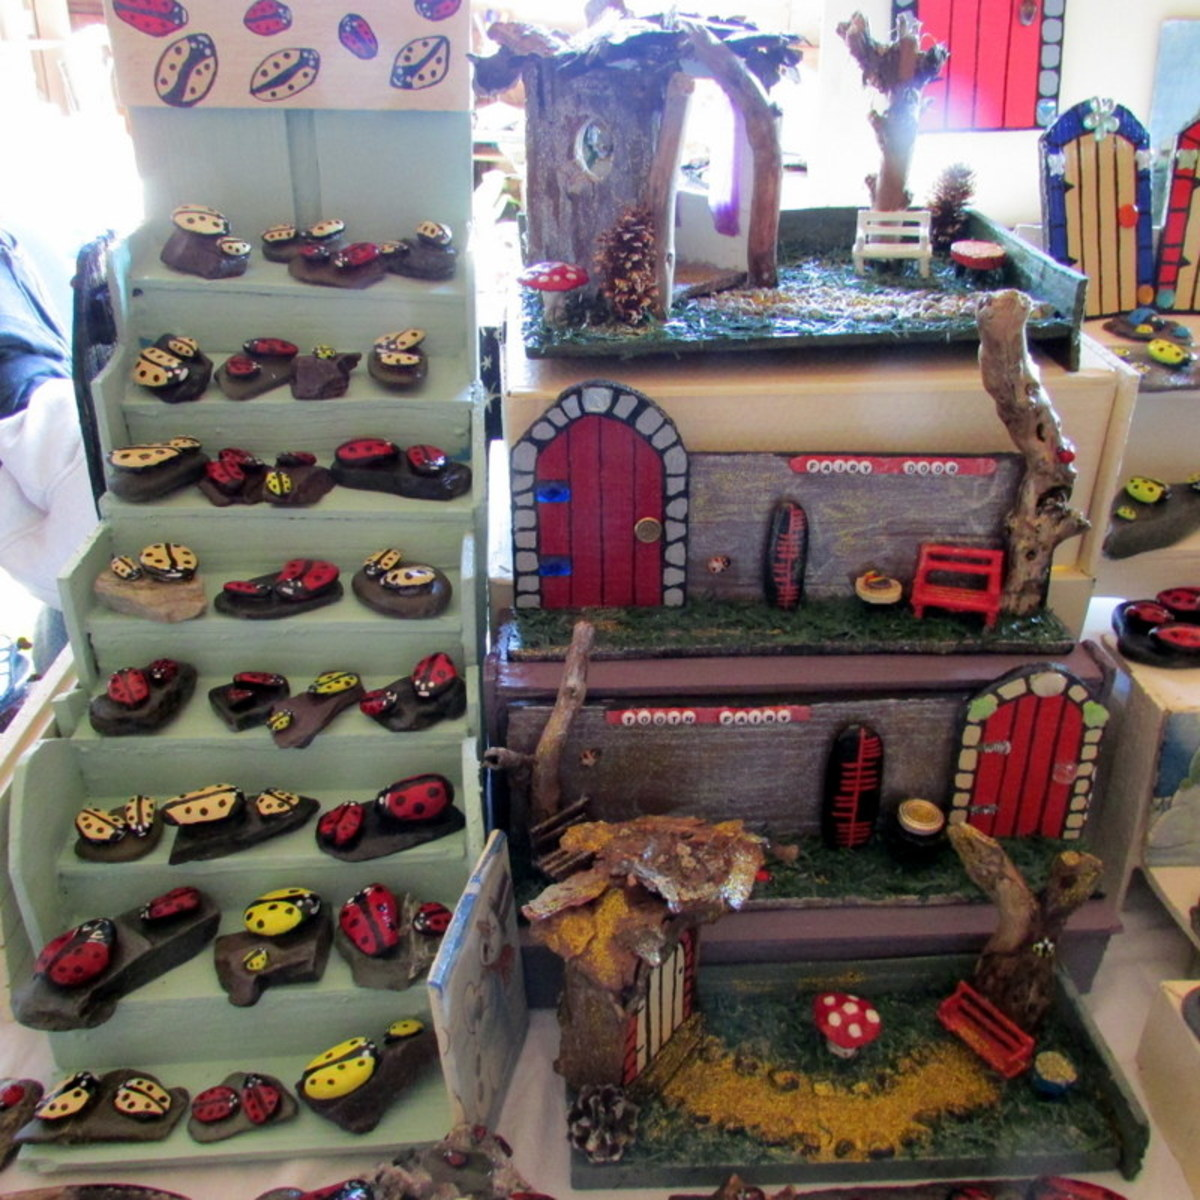 Learn how to sell your crafts at shows and fairs.